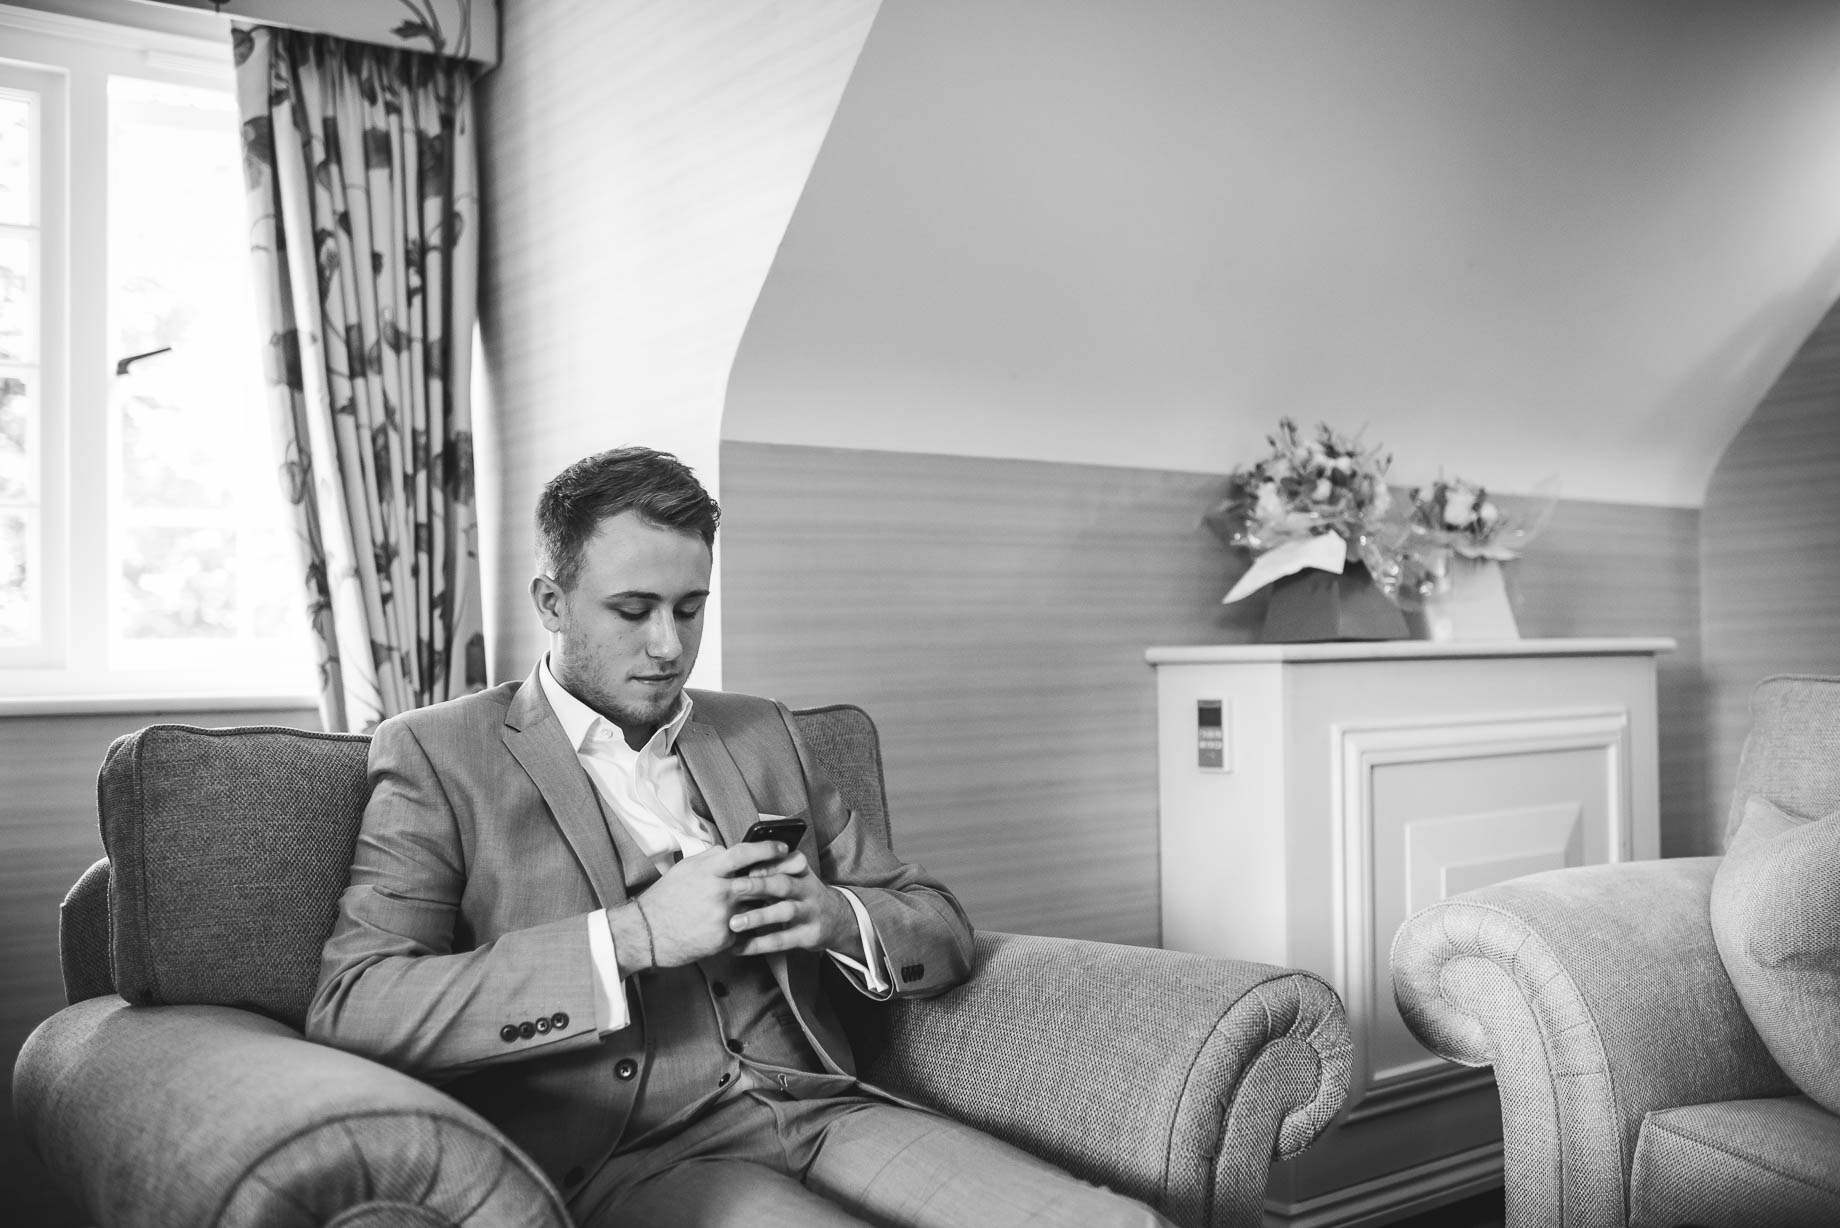 Luton Hoo wedding photography by Guy Collier Photography - Lauren and Gem (11 of 178)